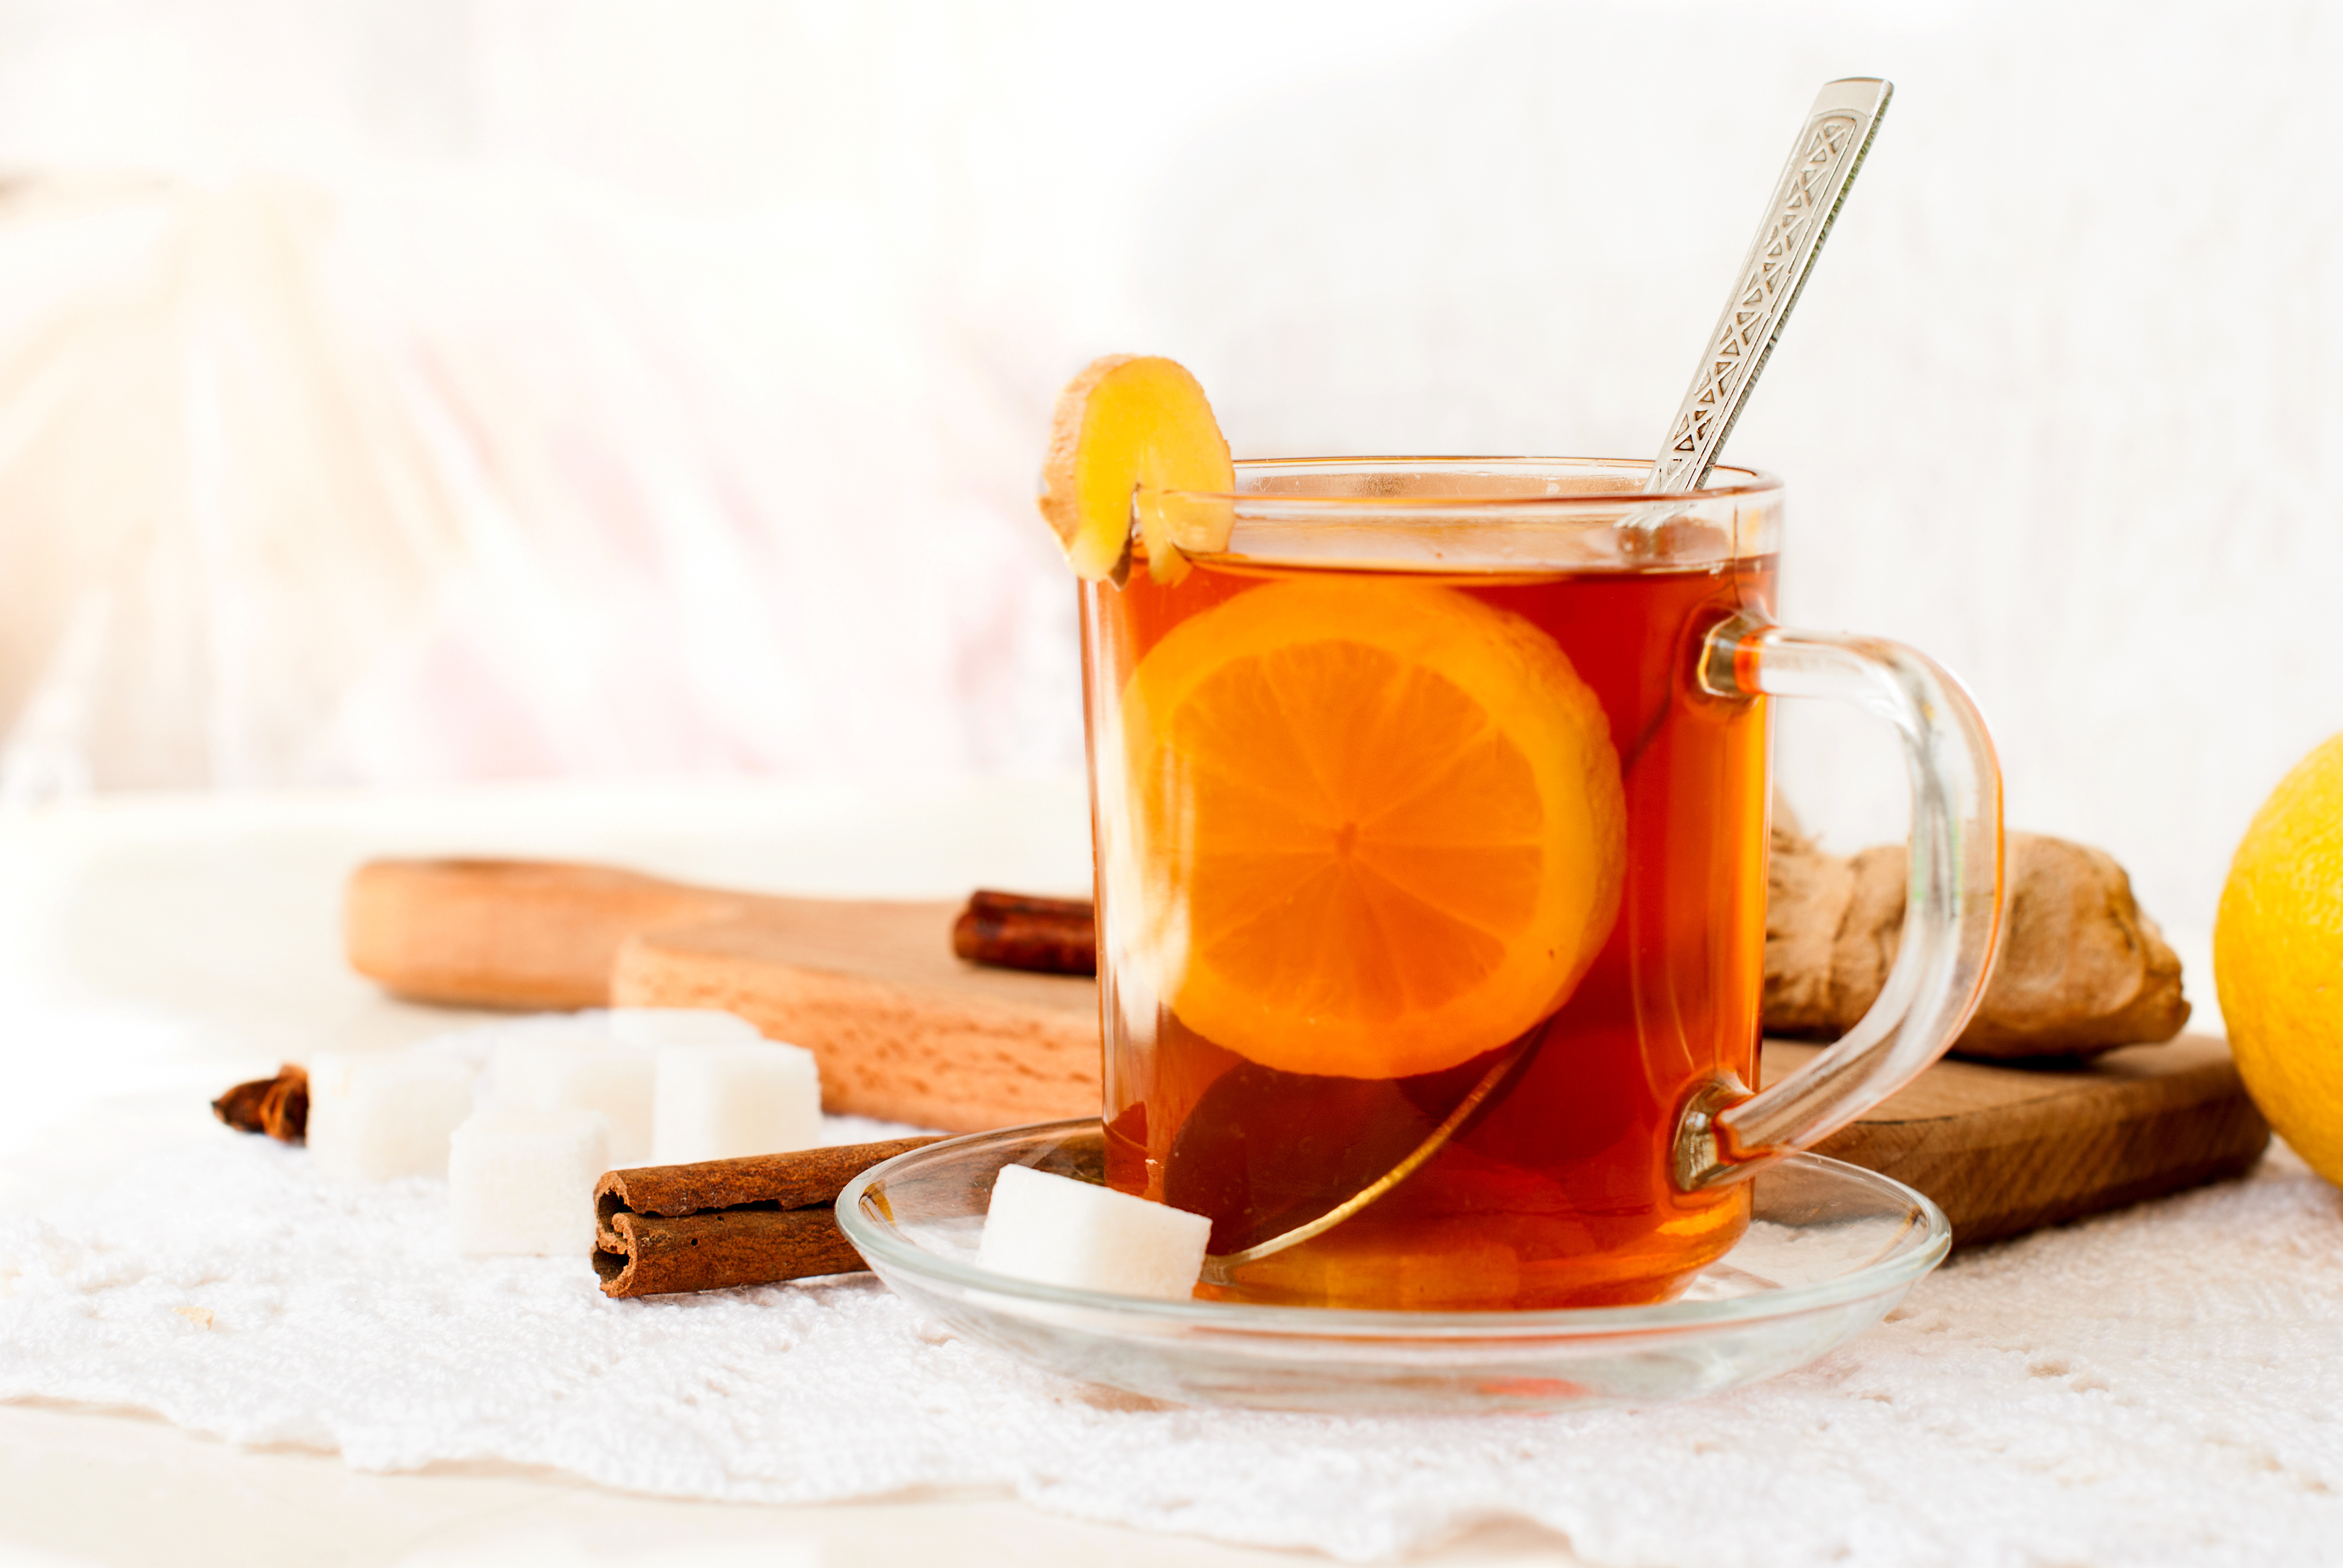 cup of tea with ginger, lemon slice and cinnamon stick. lemon and ginger root on the board